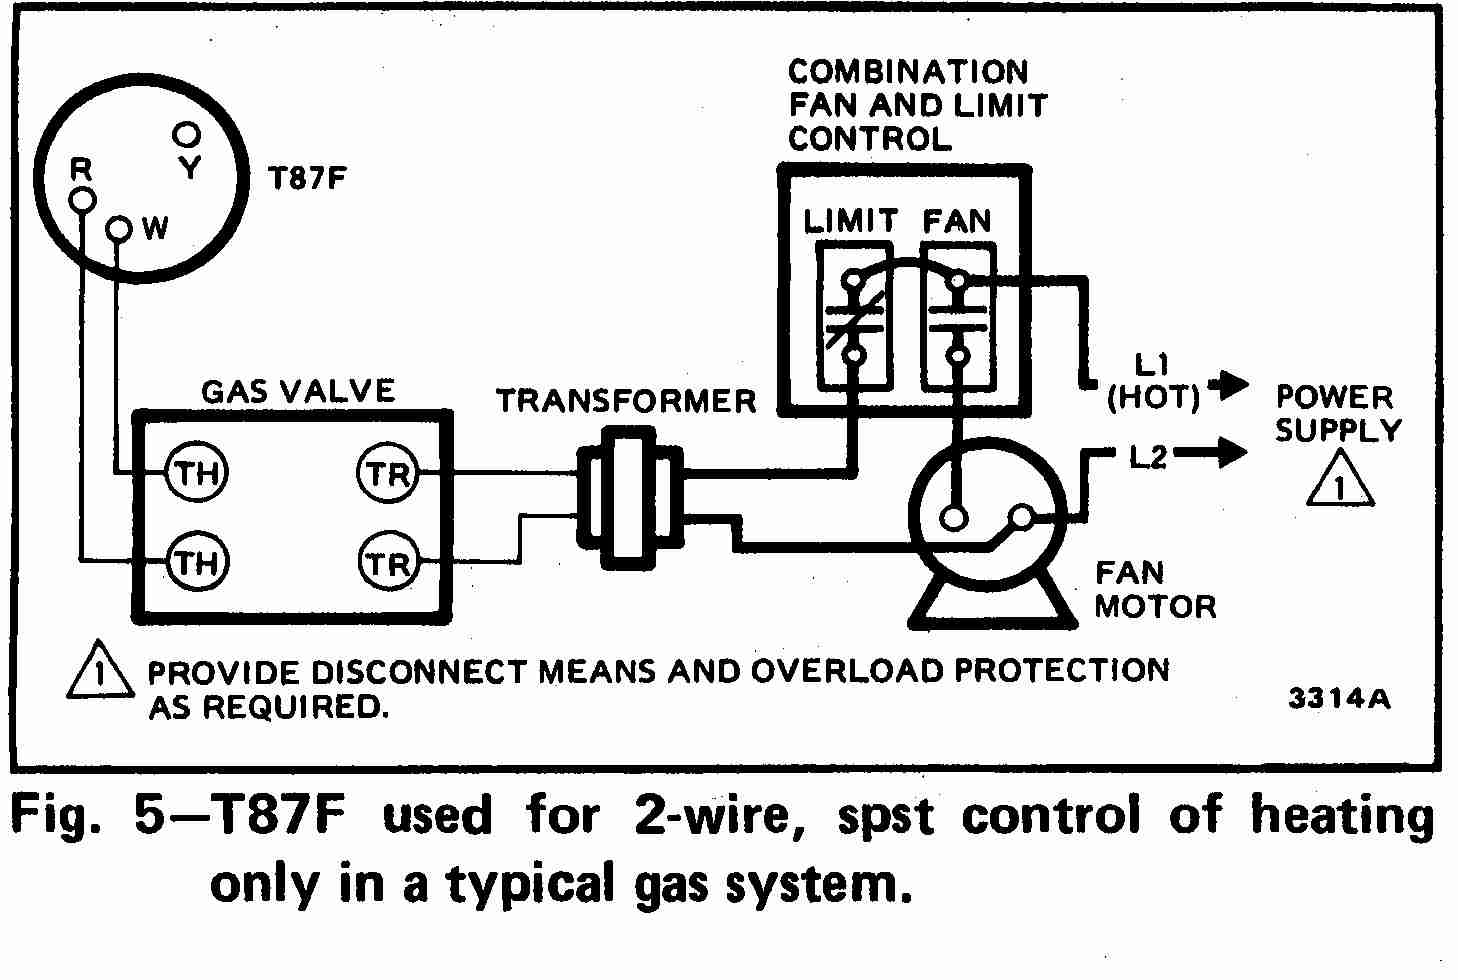 TT_T87F_0002_2Wg_DJF room thermostat wiring diagrams for hvac systems Gas Furnace Wiring Diagram at creativeand.co